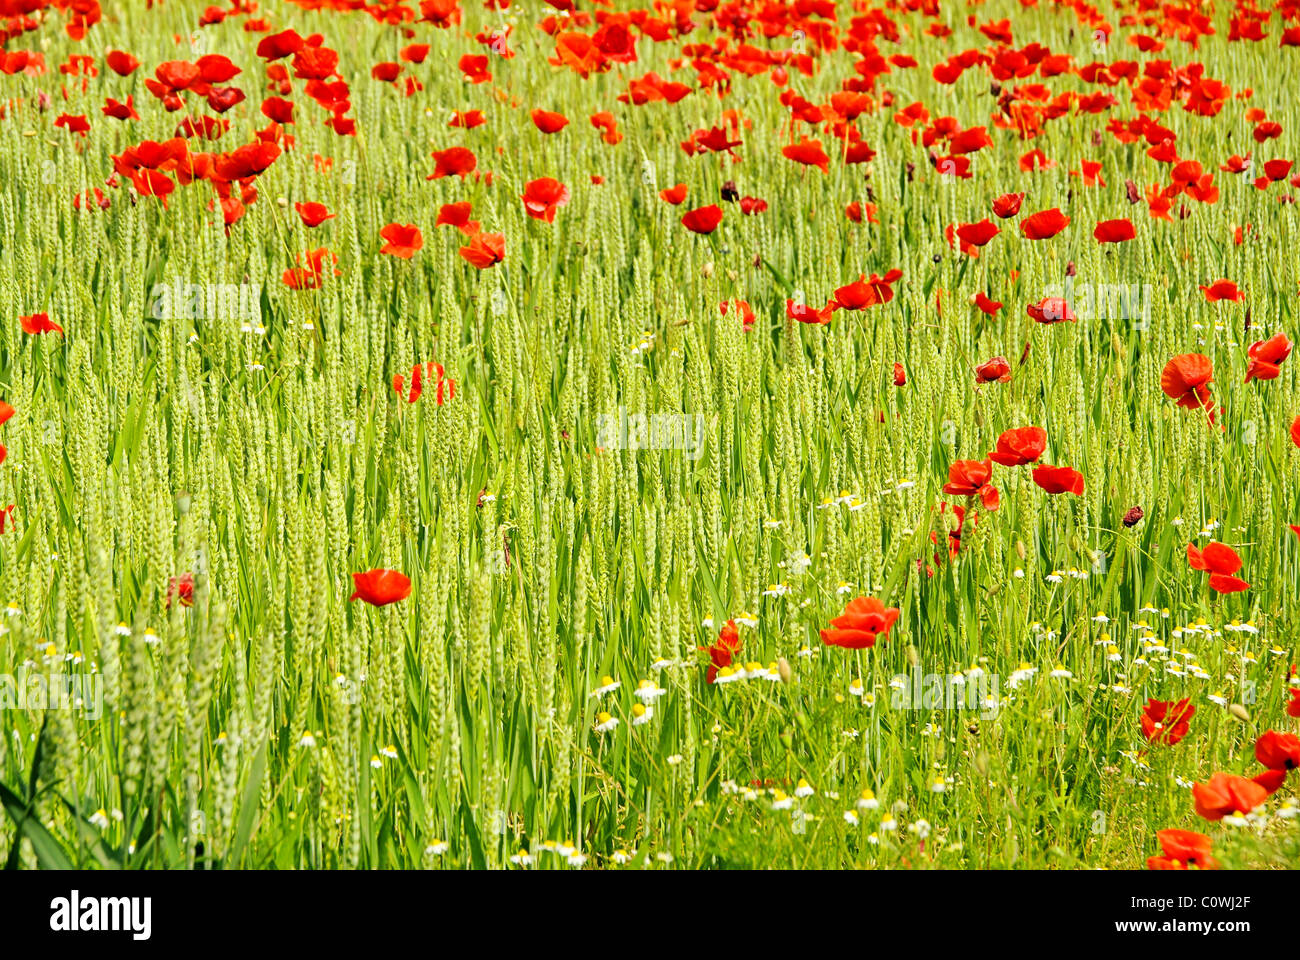 Klatschmohn im Feld - corn poppy in field 06 - Stock Image